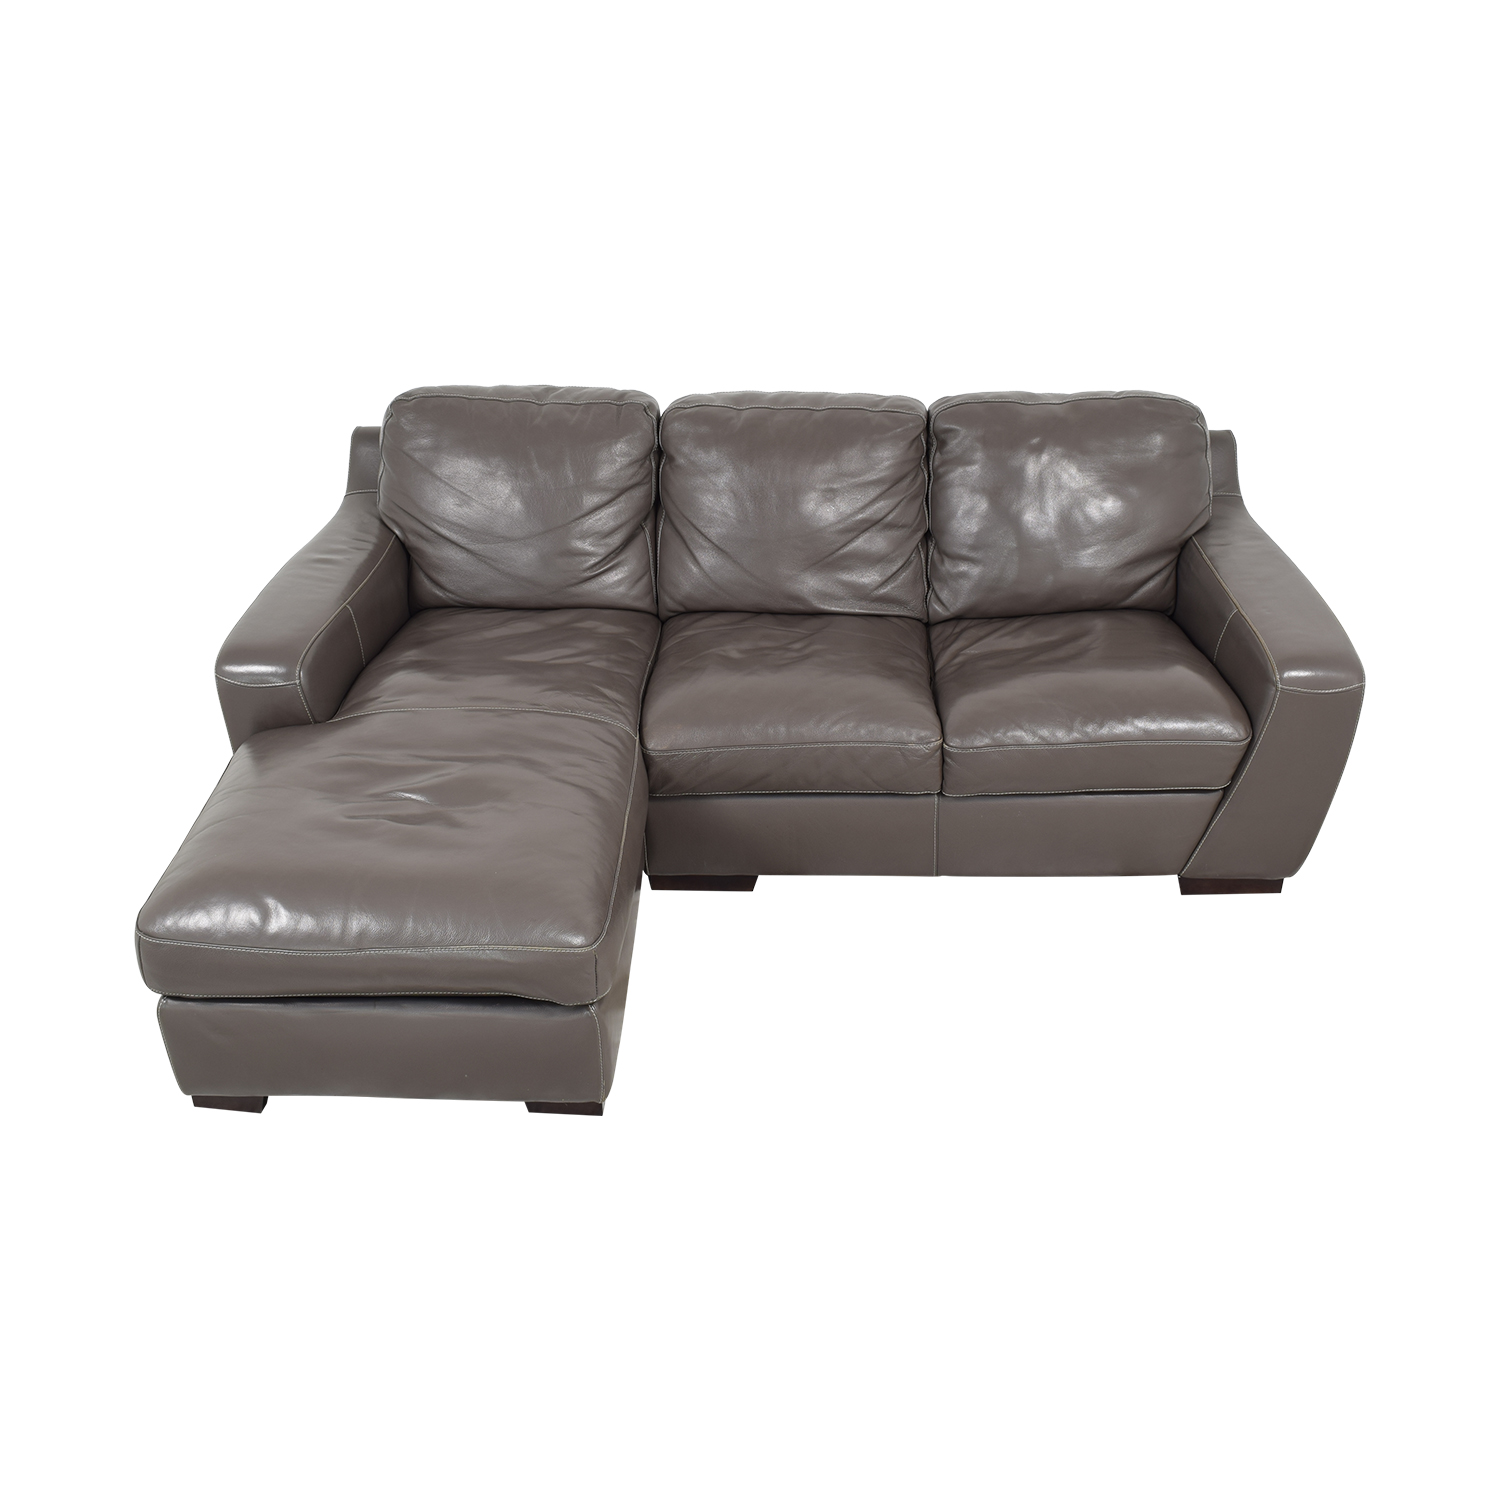 Cool 66 Off Raymour Flanigan Raymour Flanigan Leather Sectional Sofa Sofas Pabps2019 Chair Design Images Pabps2019Com